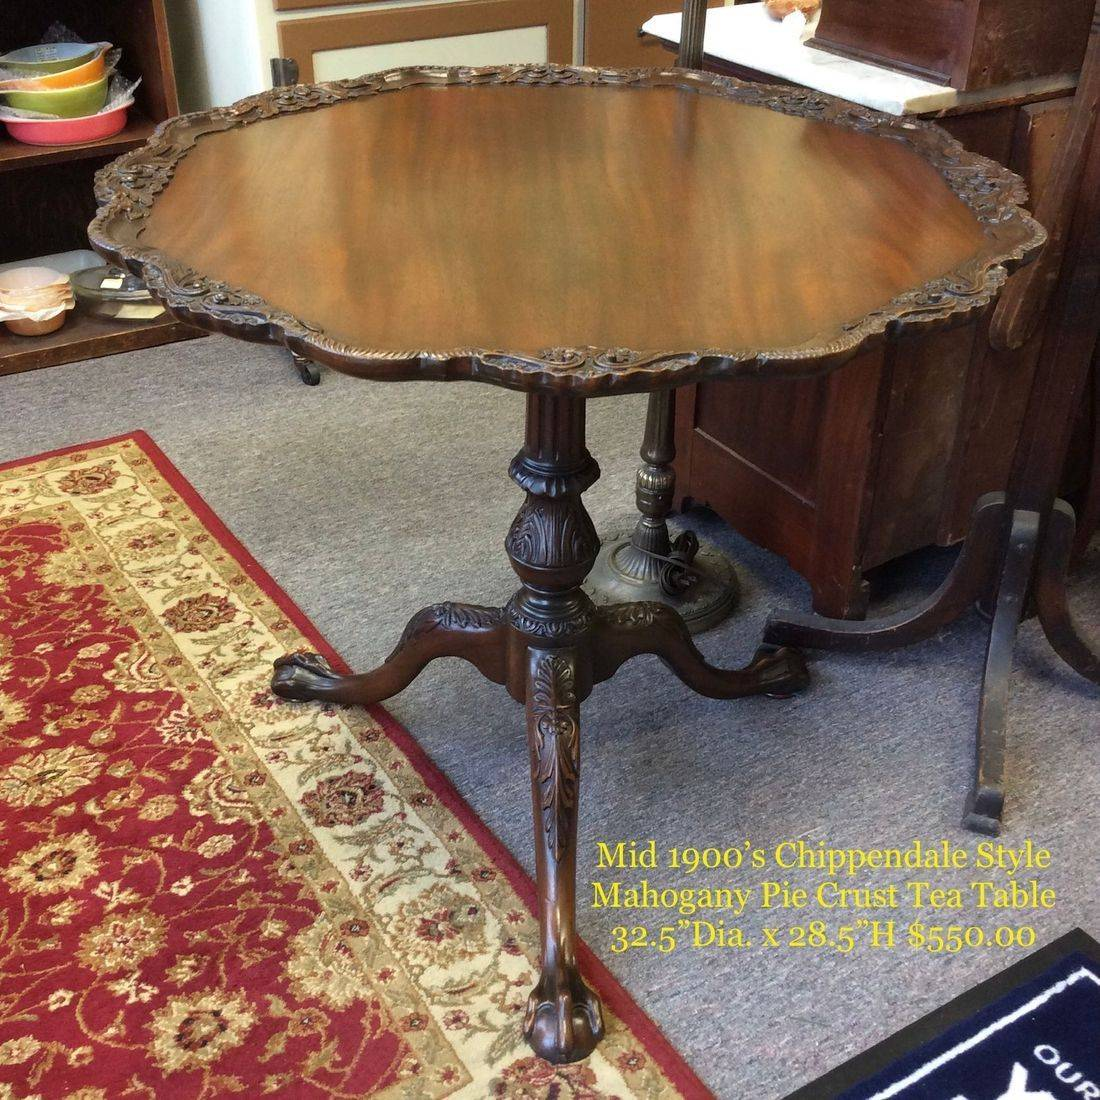 "Mid 1900's Chippendale Style, Mahogany Pie Crust Tea Table w/Floral Carvings and Ball & Claw Feet, 32-1/2"" dia. X 28-1/2"" Hgt.   $550.00"